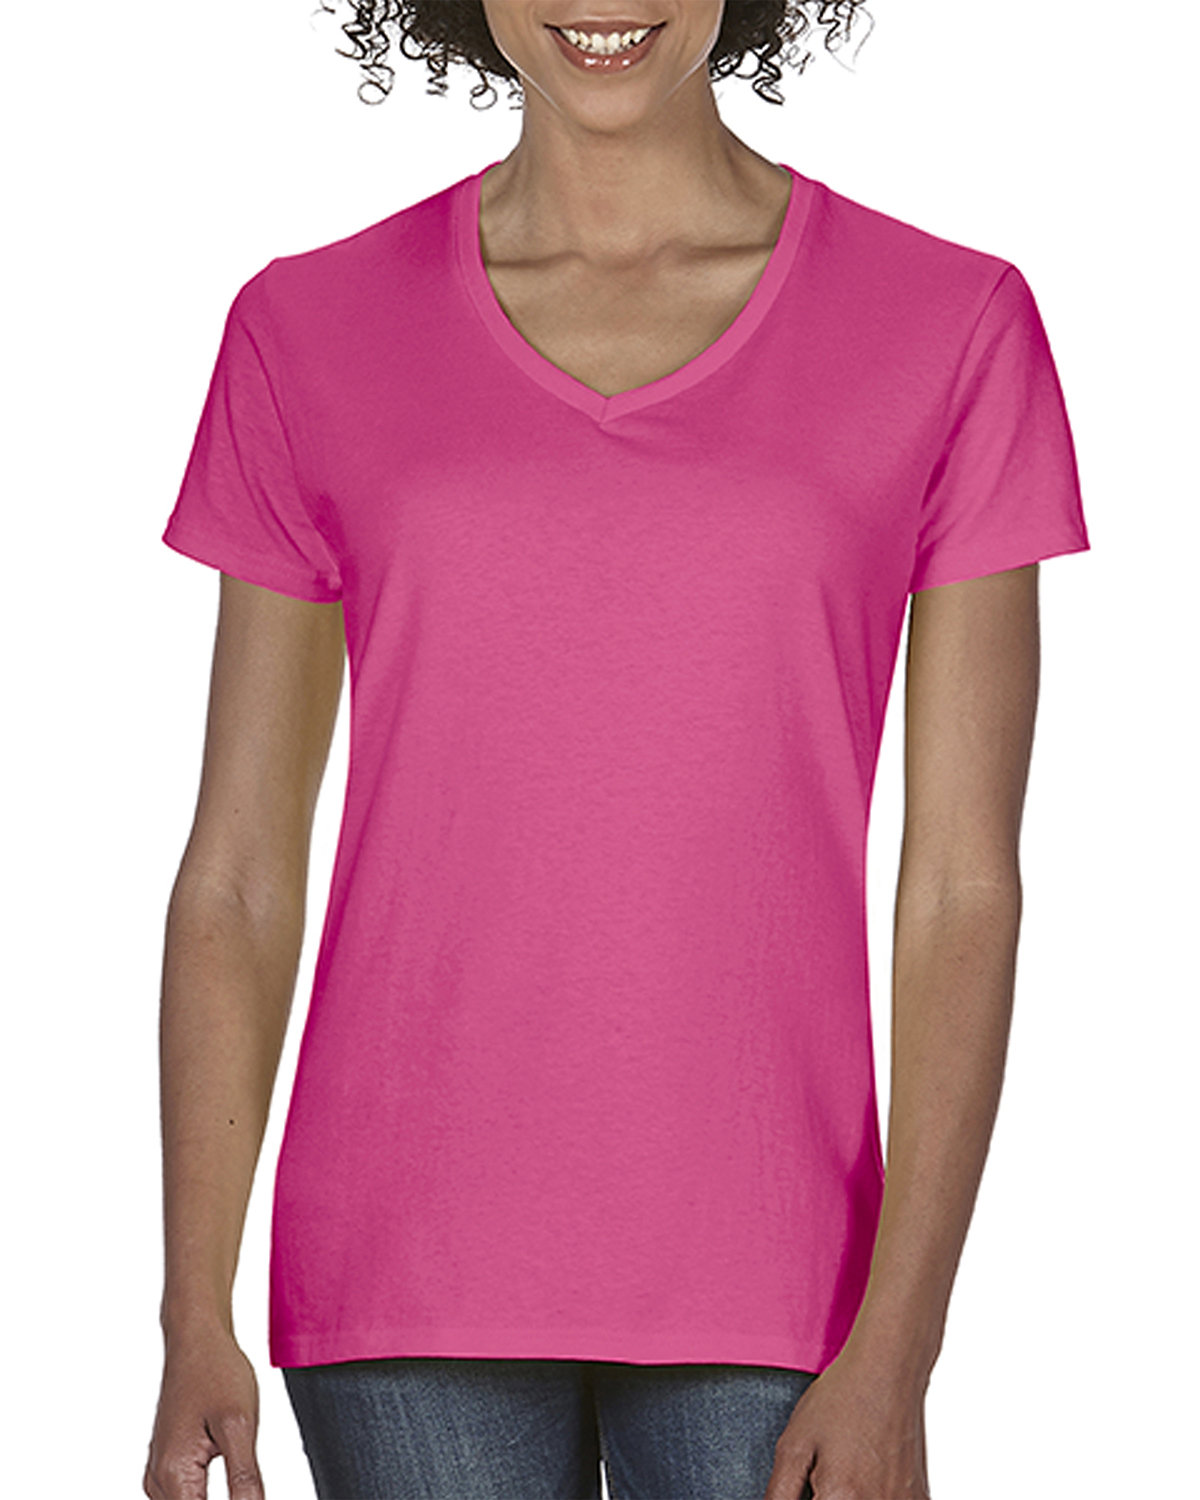 Comfort Colors Ladies' Midweight V-Neck T-Shirt NEON PINK